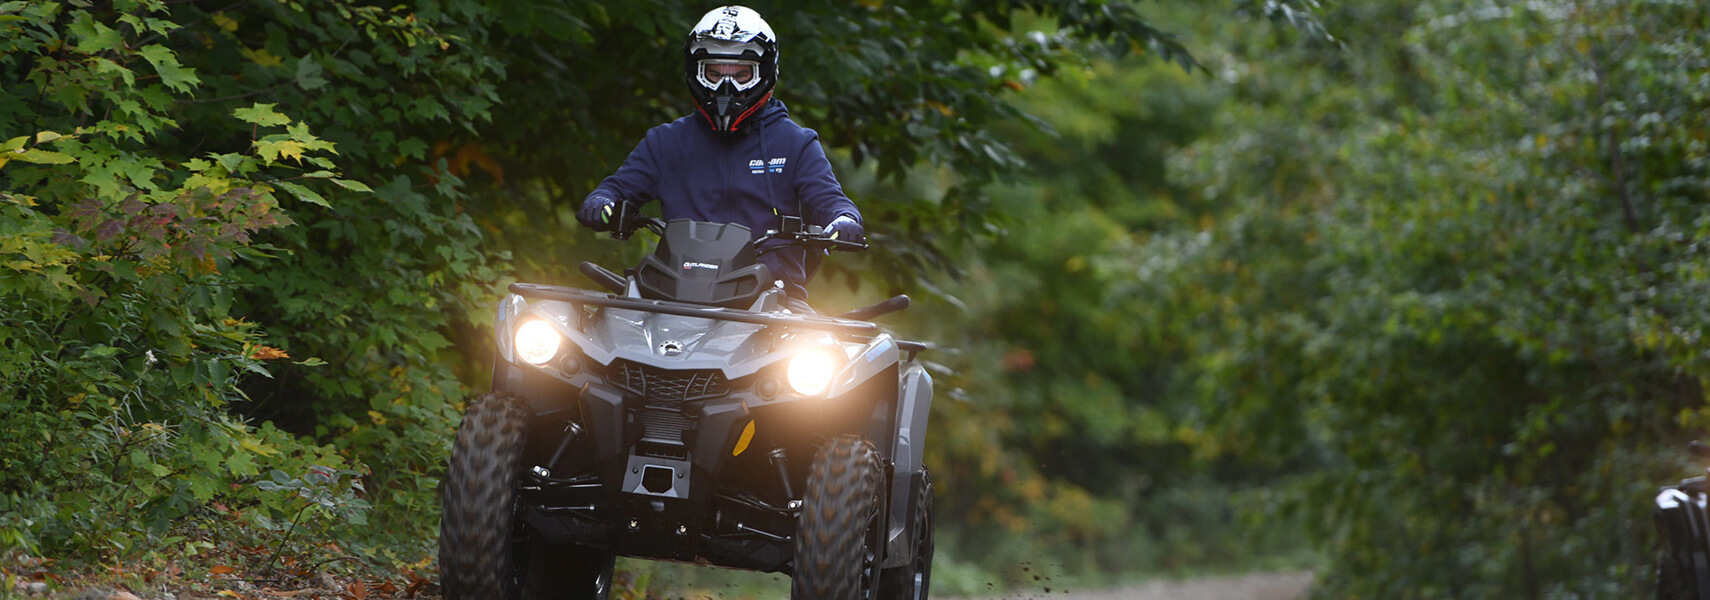 Can-Am ATV - 2021 OUTLANDER 450 / 570 T